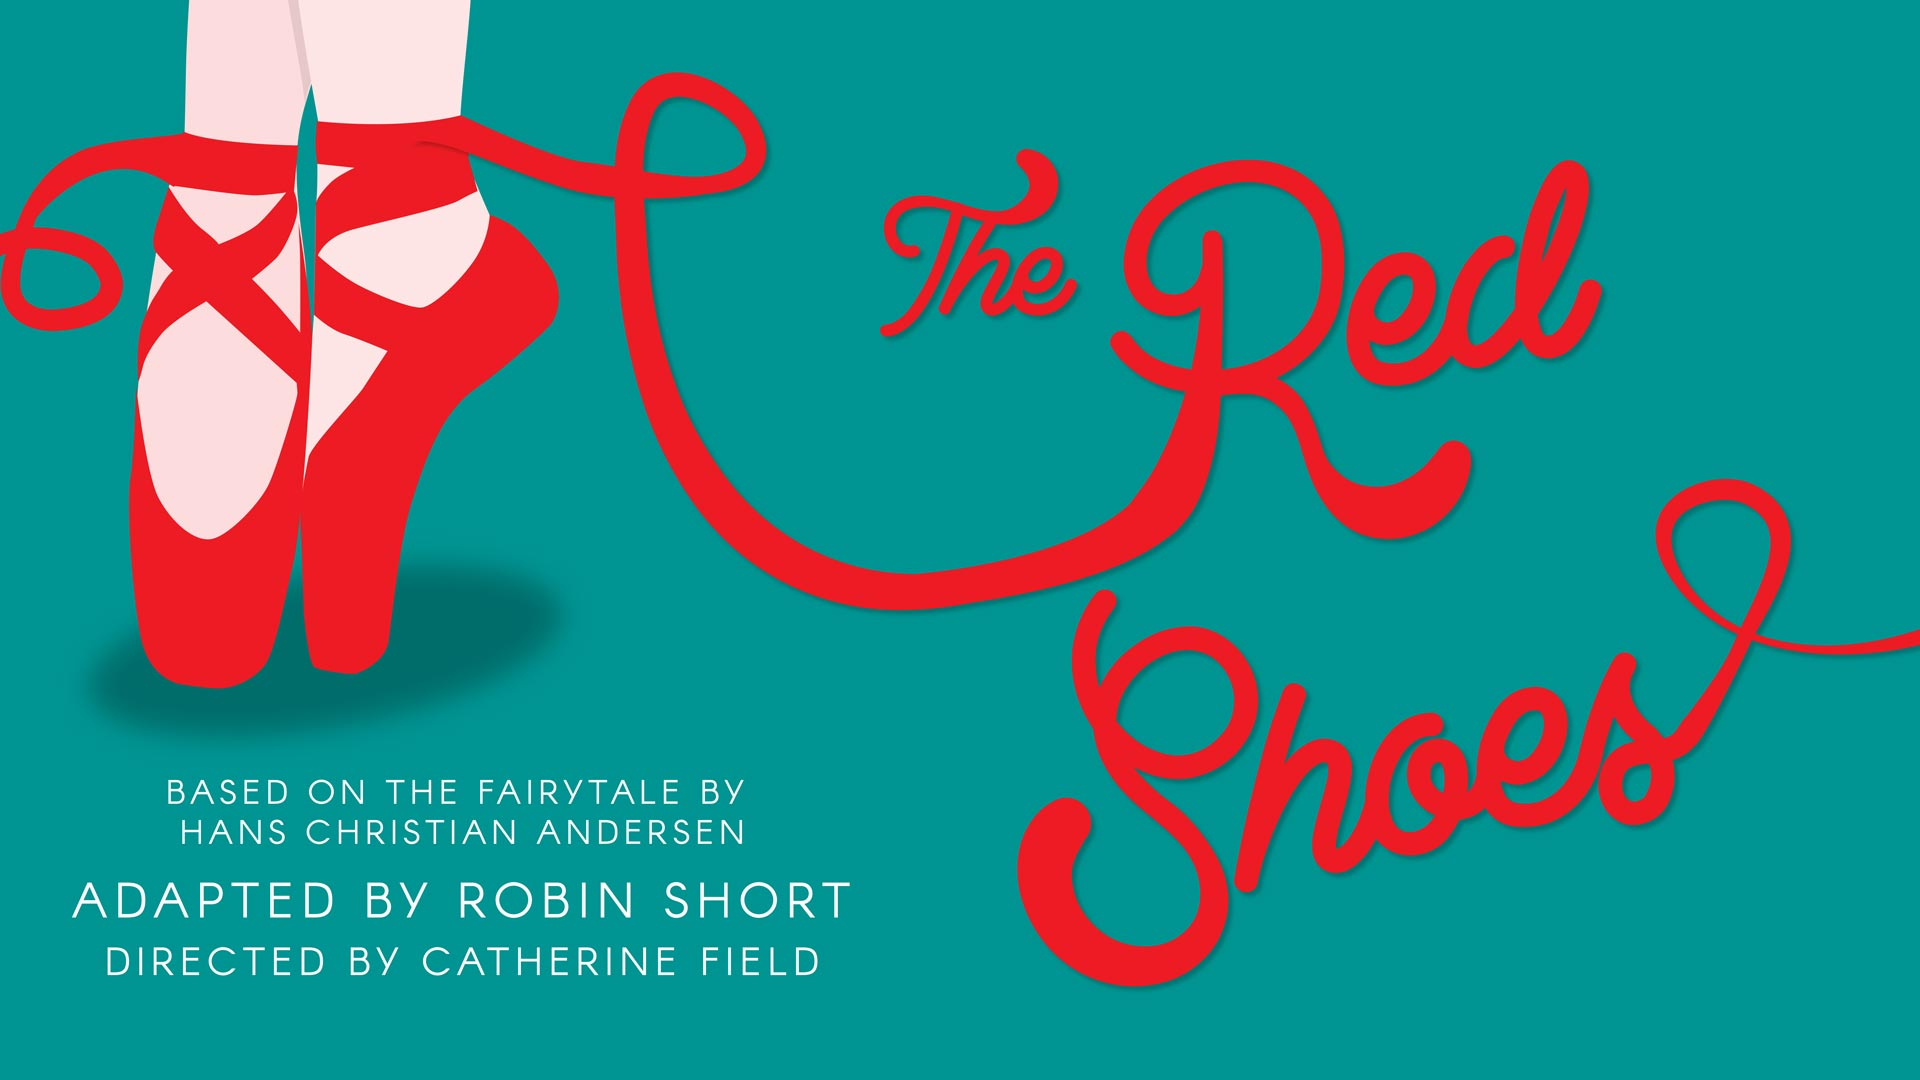 The Red Shoes adapted by Robin Short